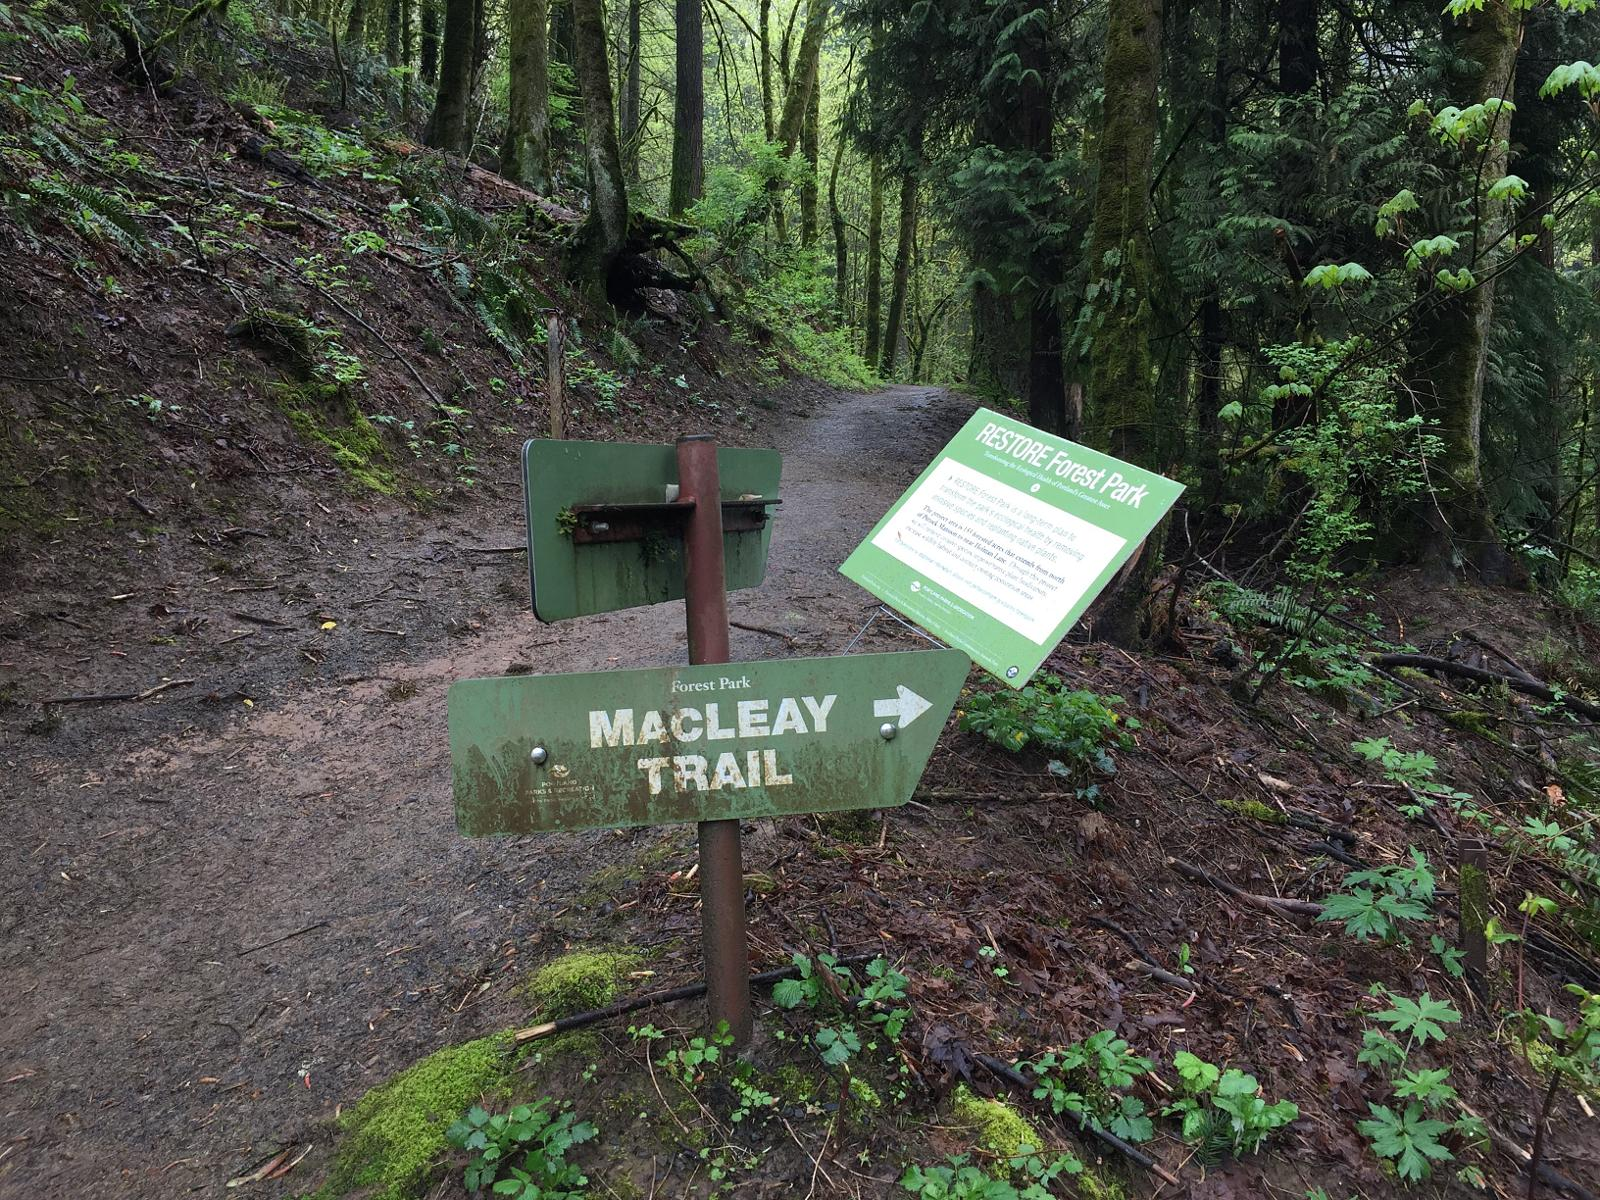 Maclean trails